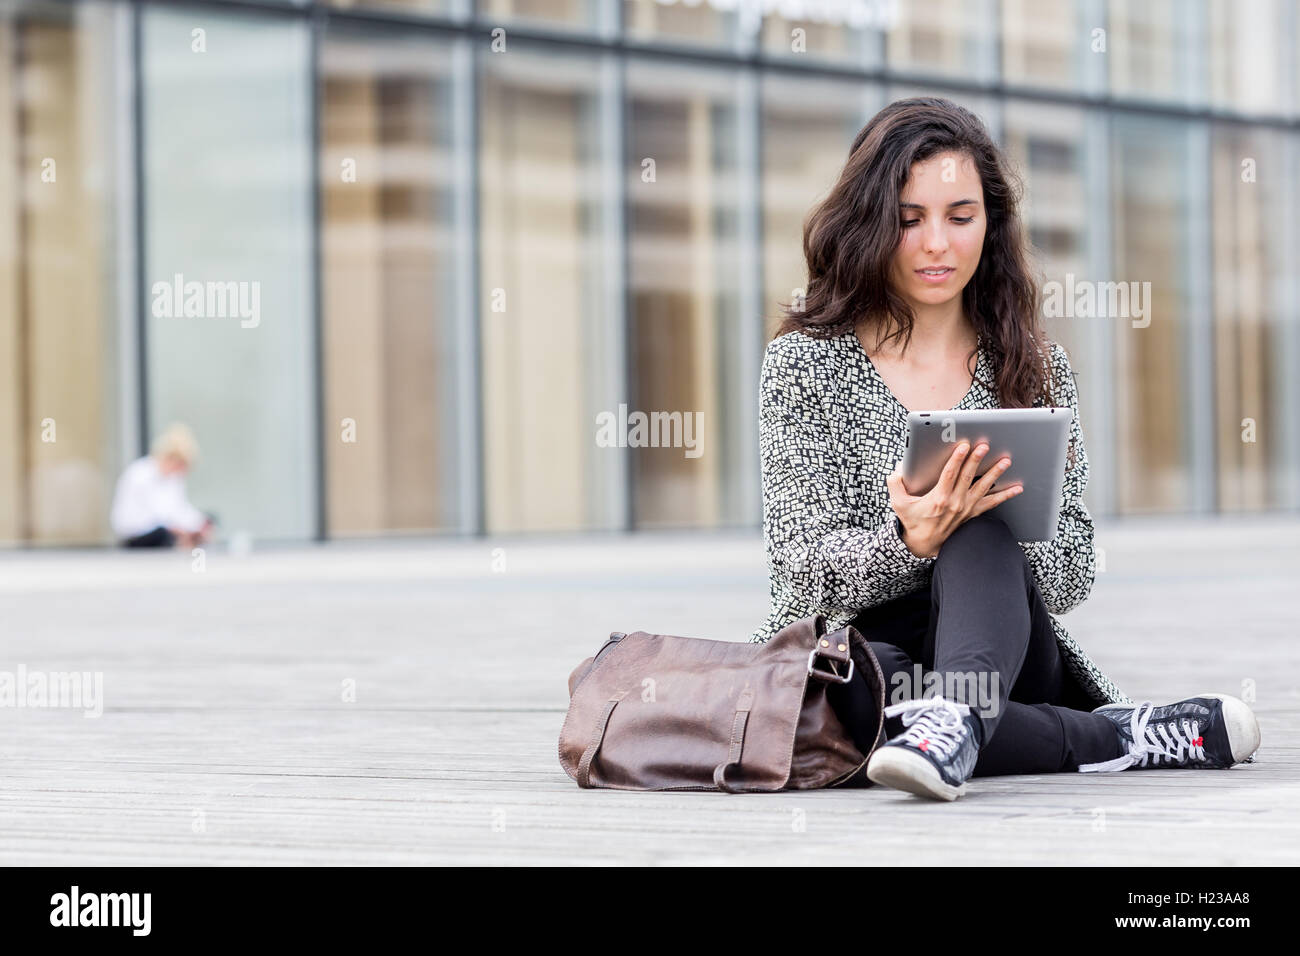 Woman using digital tablet. Photo Stock